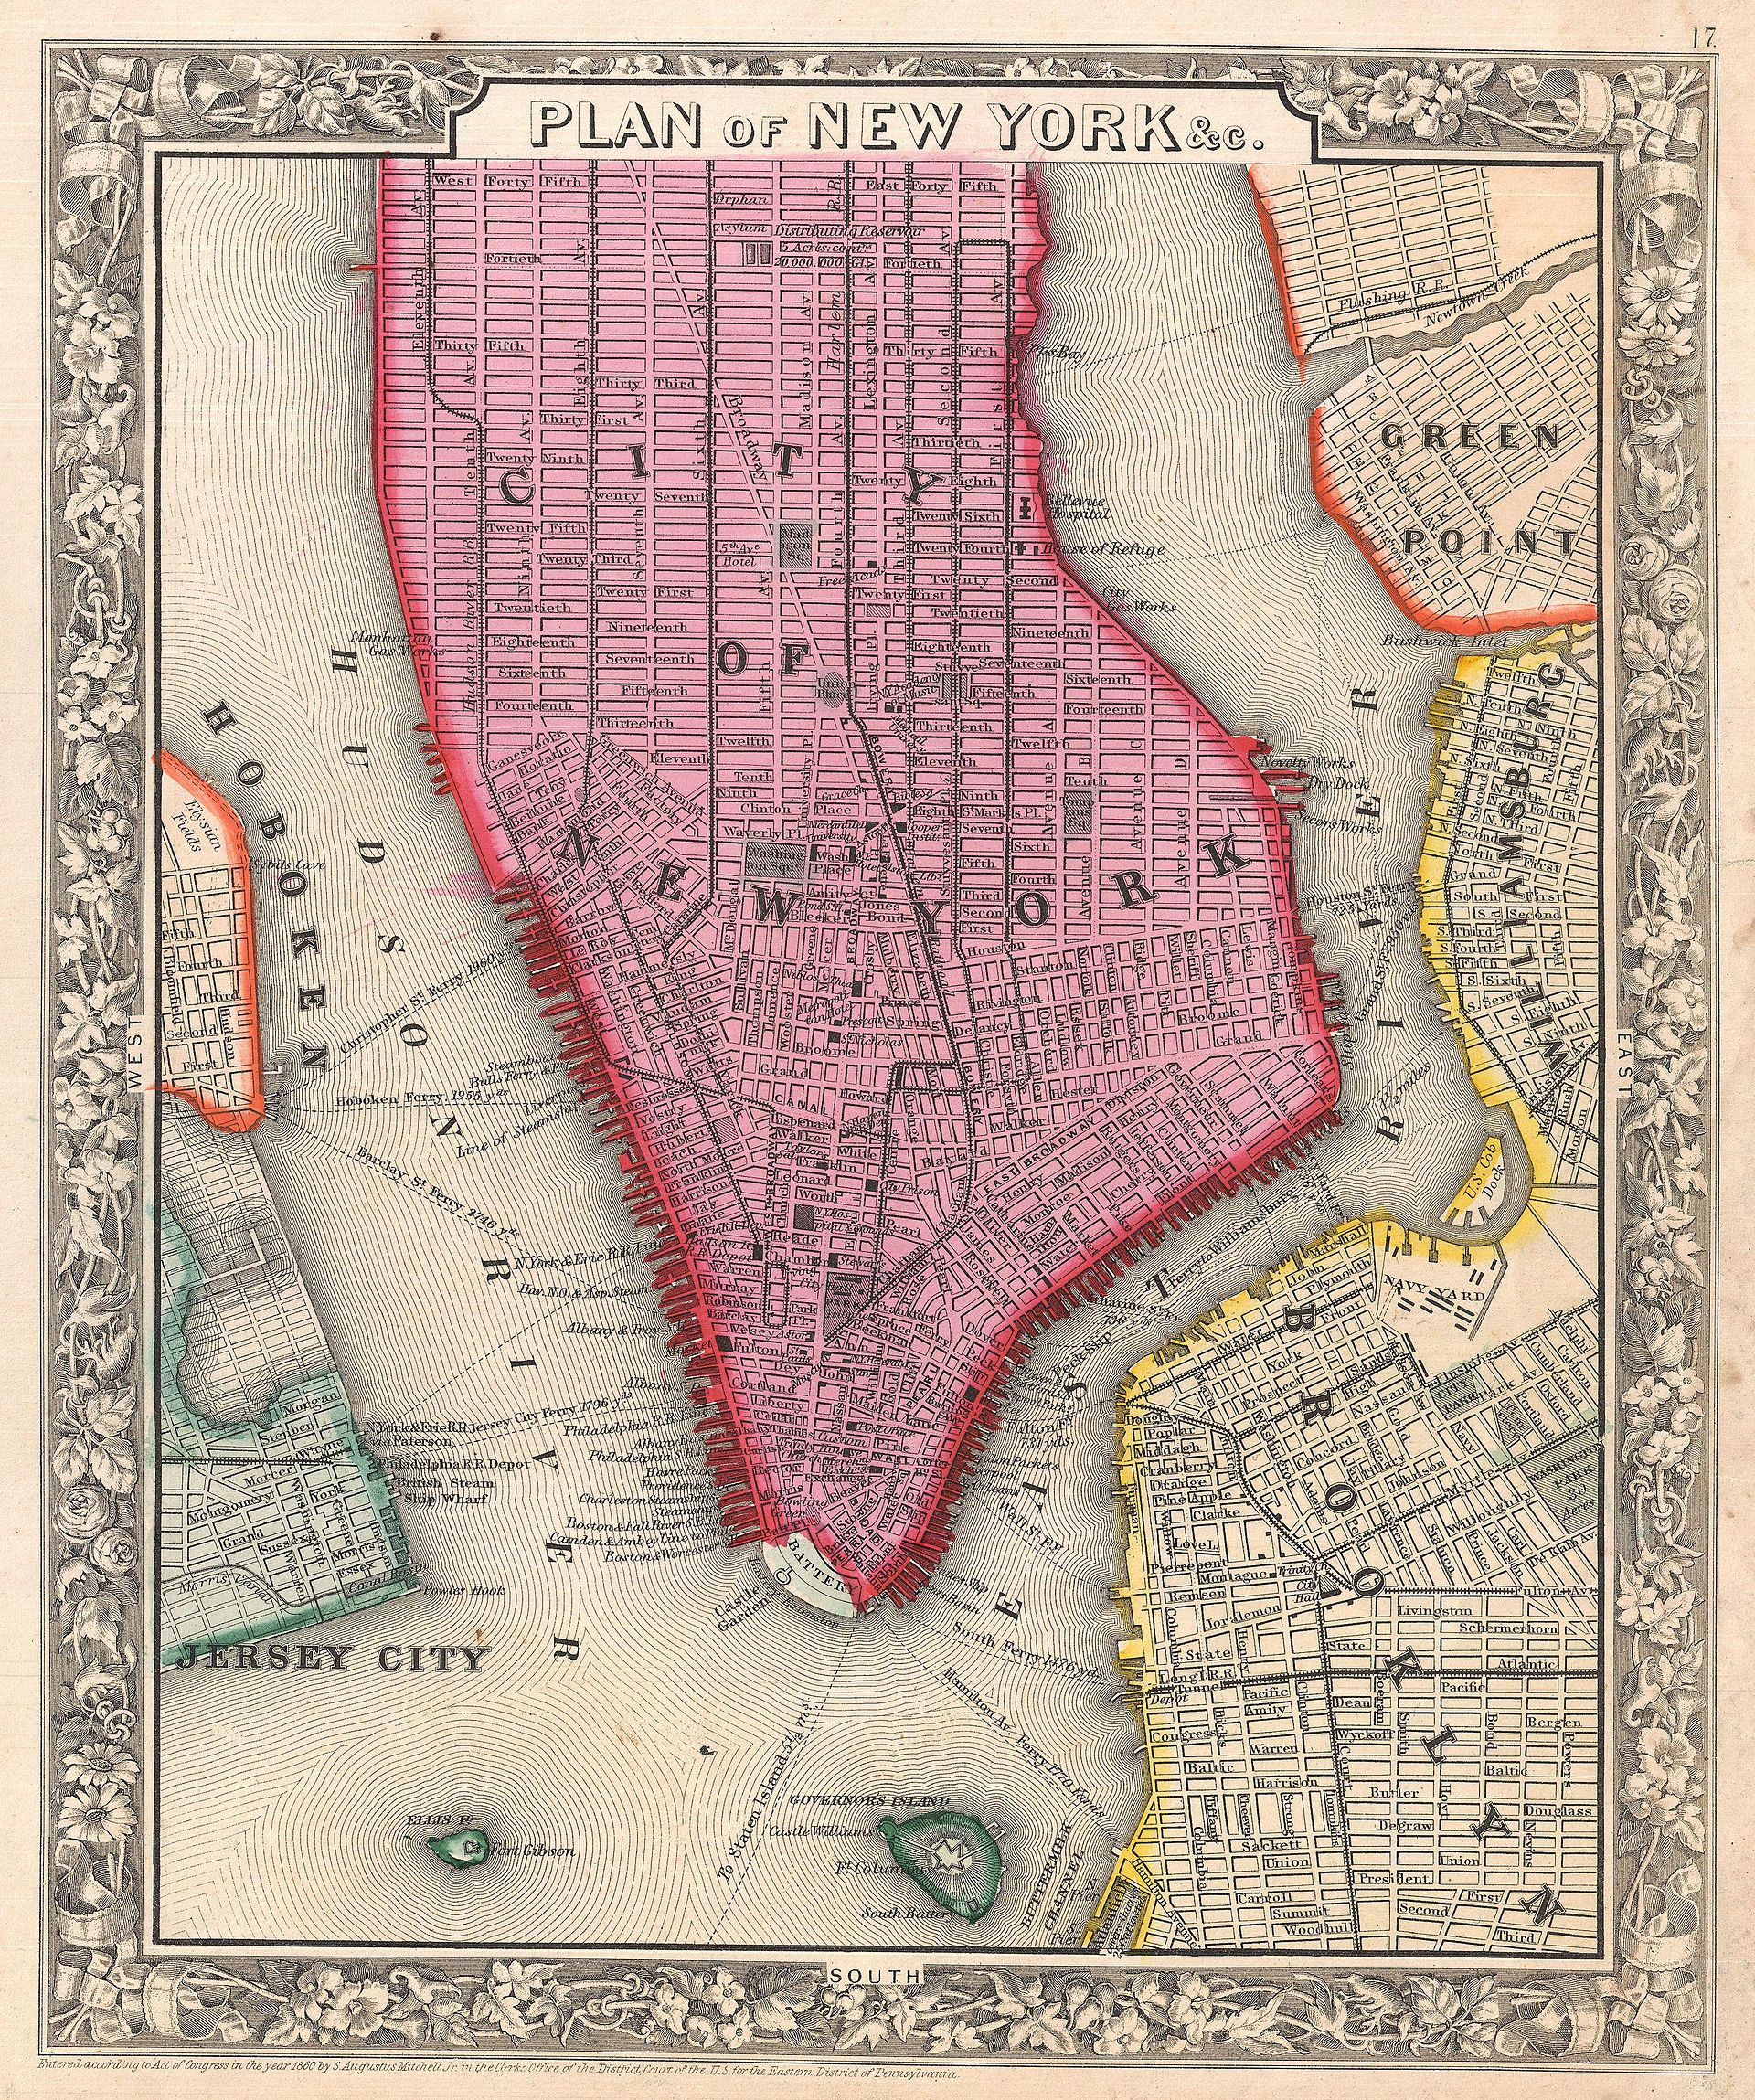 From New York City: New York City In The American Civil War